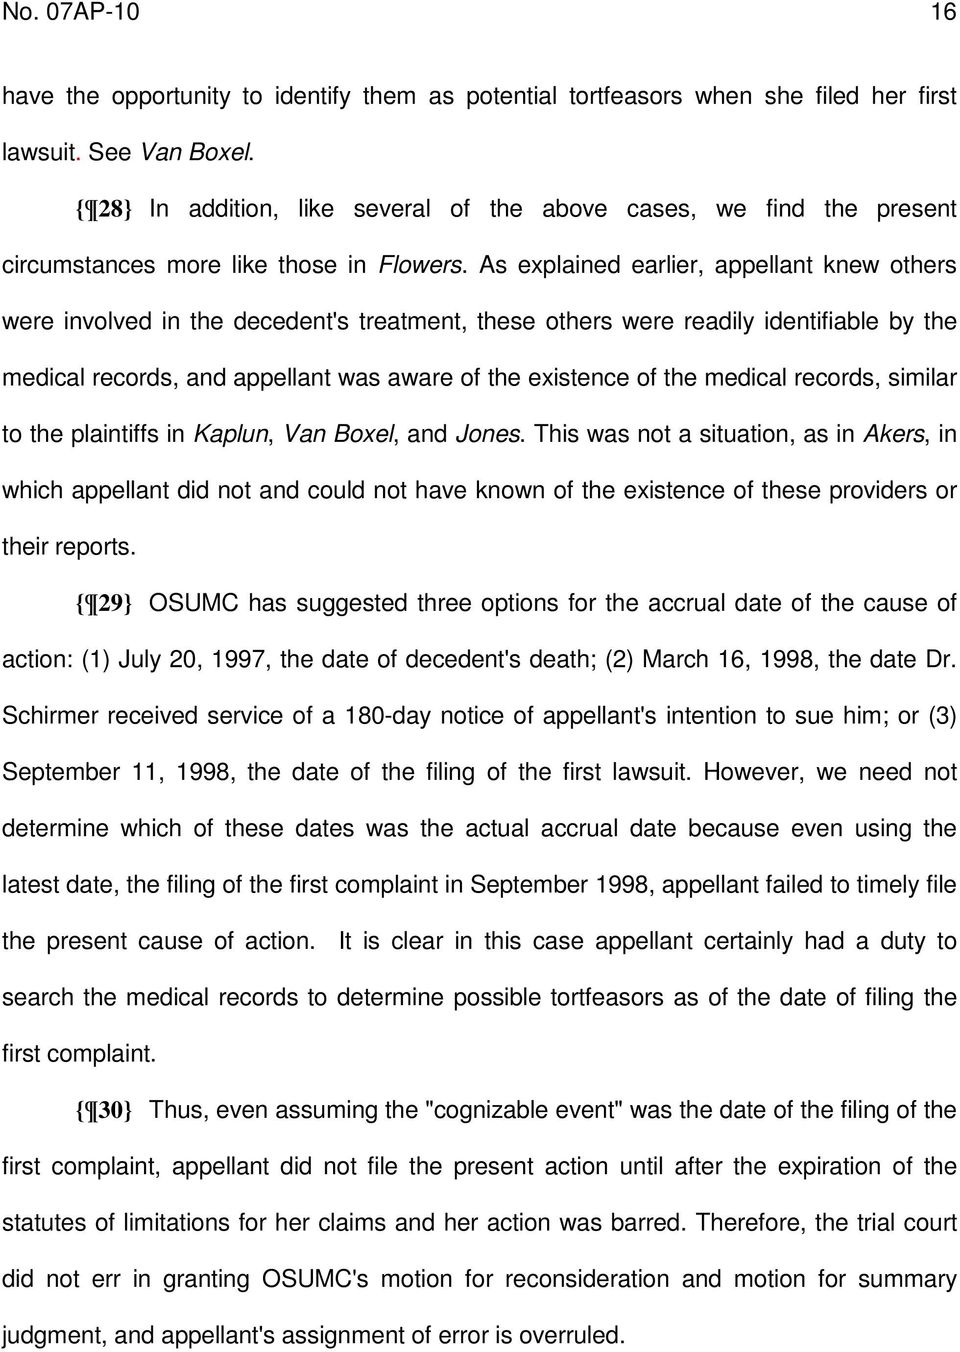 As explained earlier, appellant knew others were involved in the decedent's treatment, these others were readily identifiable by the medical records, and appellant was aware of the existence of the